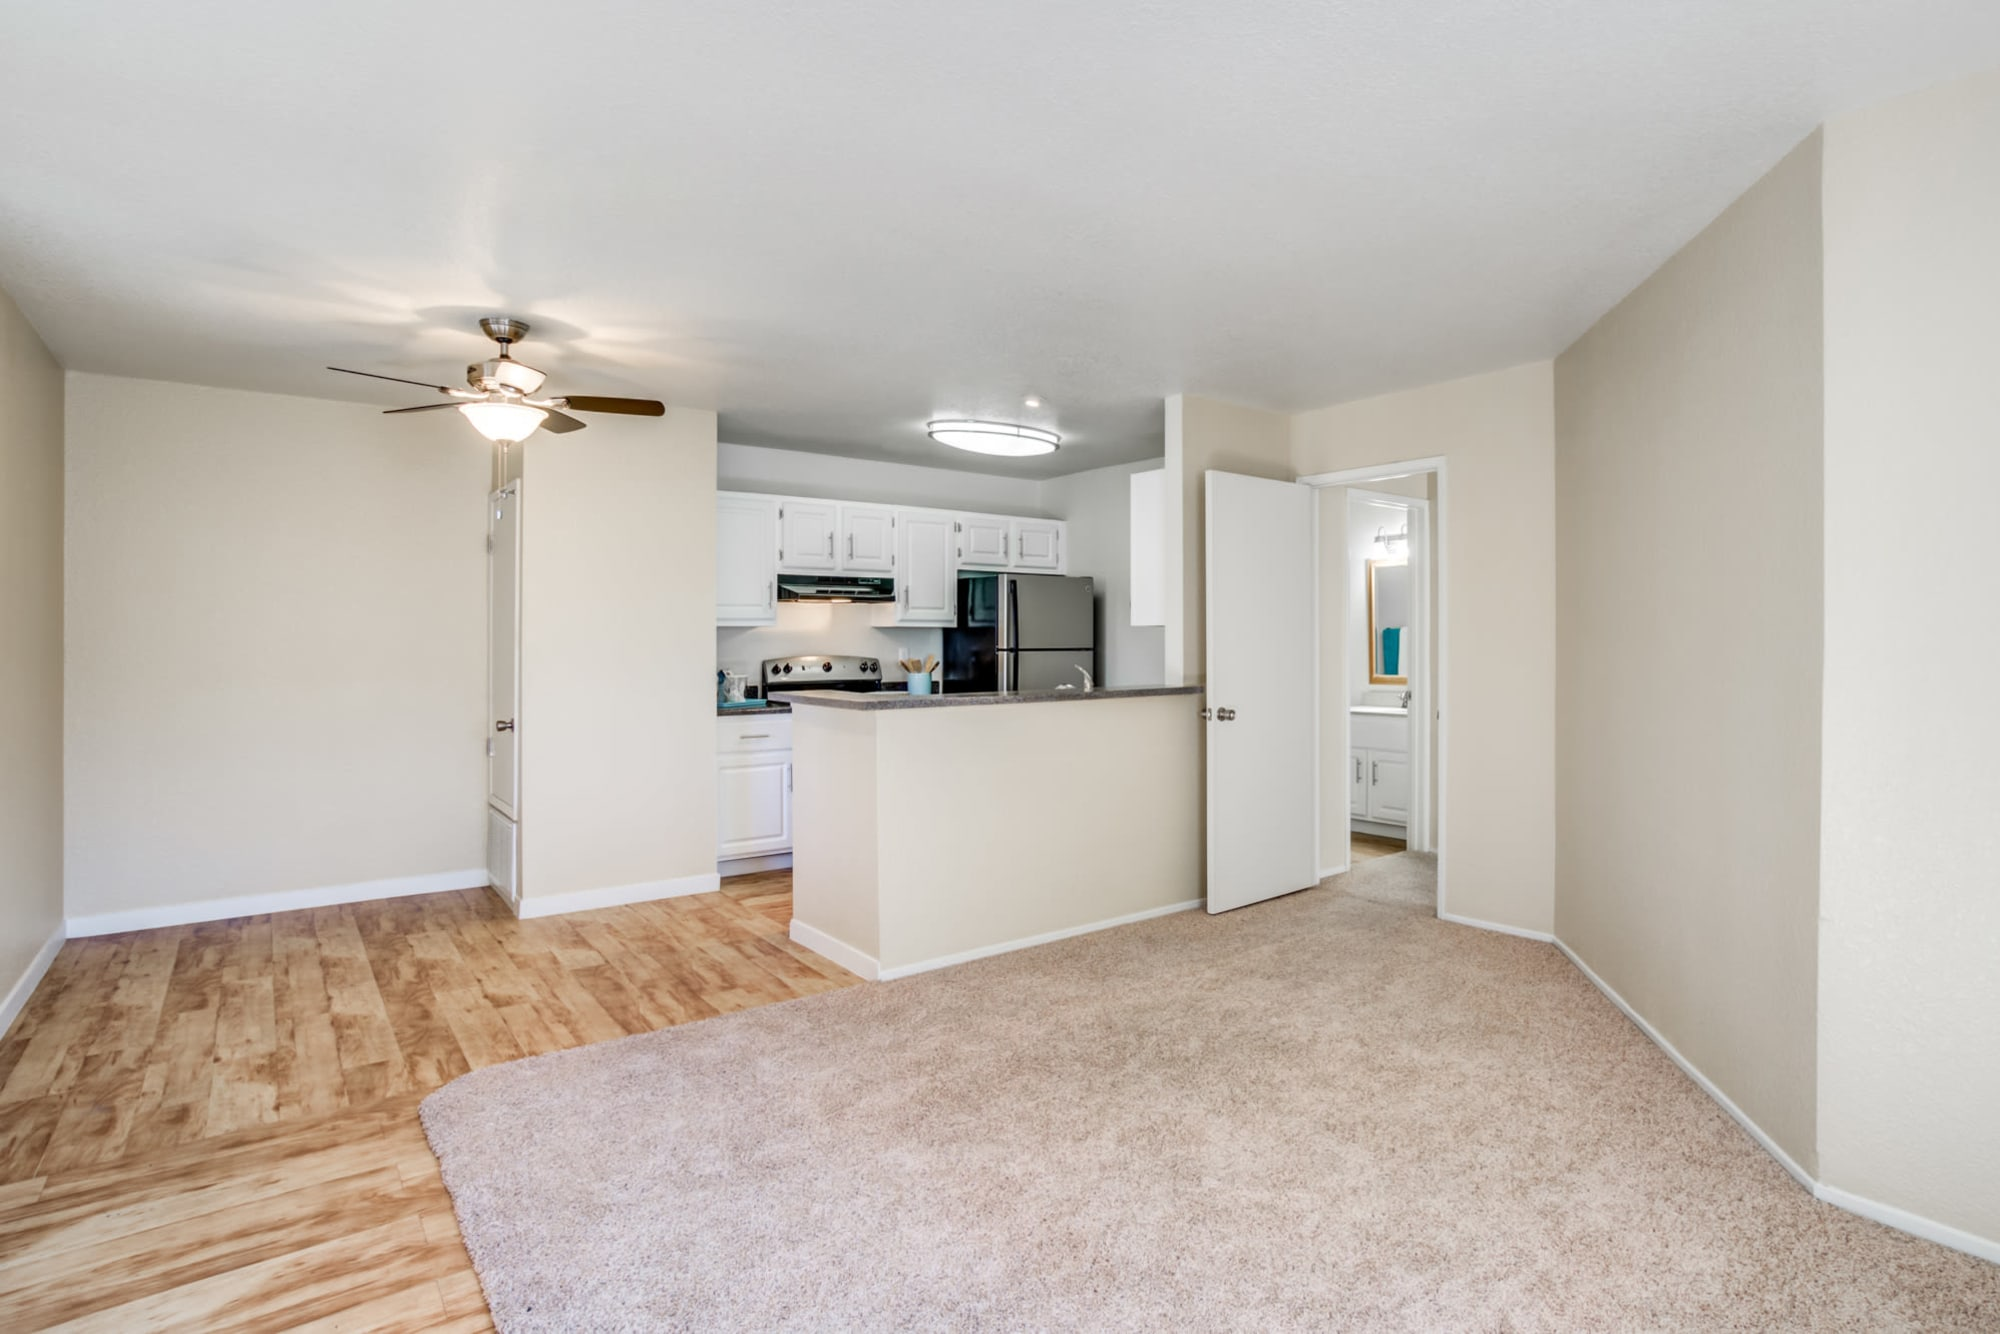 open and spacious floor plan with dining and kitchen room view